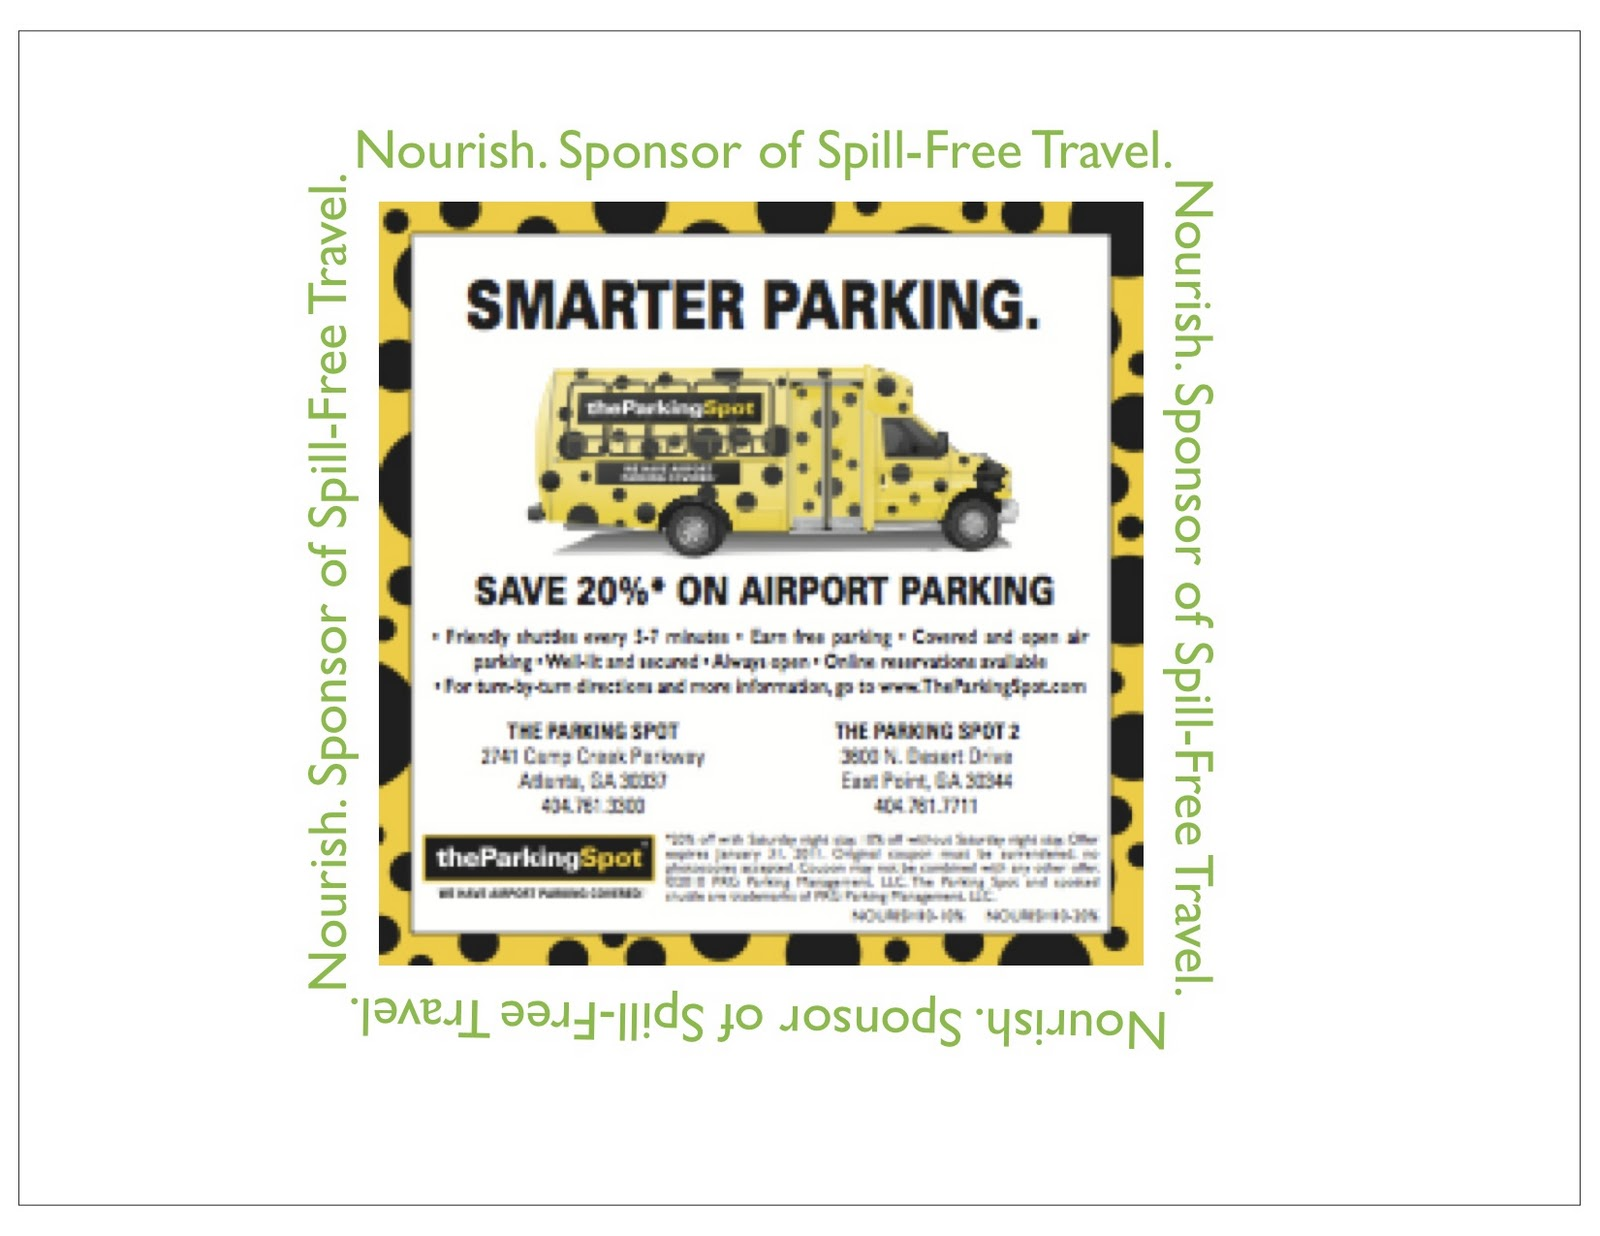 Atlanta Hartsfield-Jackson Airport Parking Deals (ATL) The best parking lots at Atlanta airport offer discounted rates here. Long term parking rates start from $